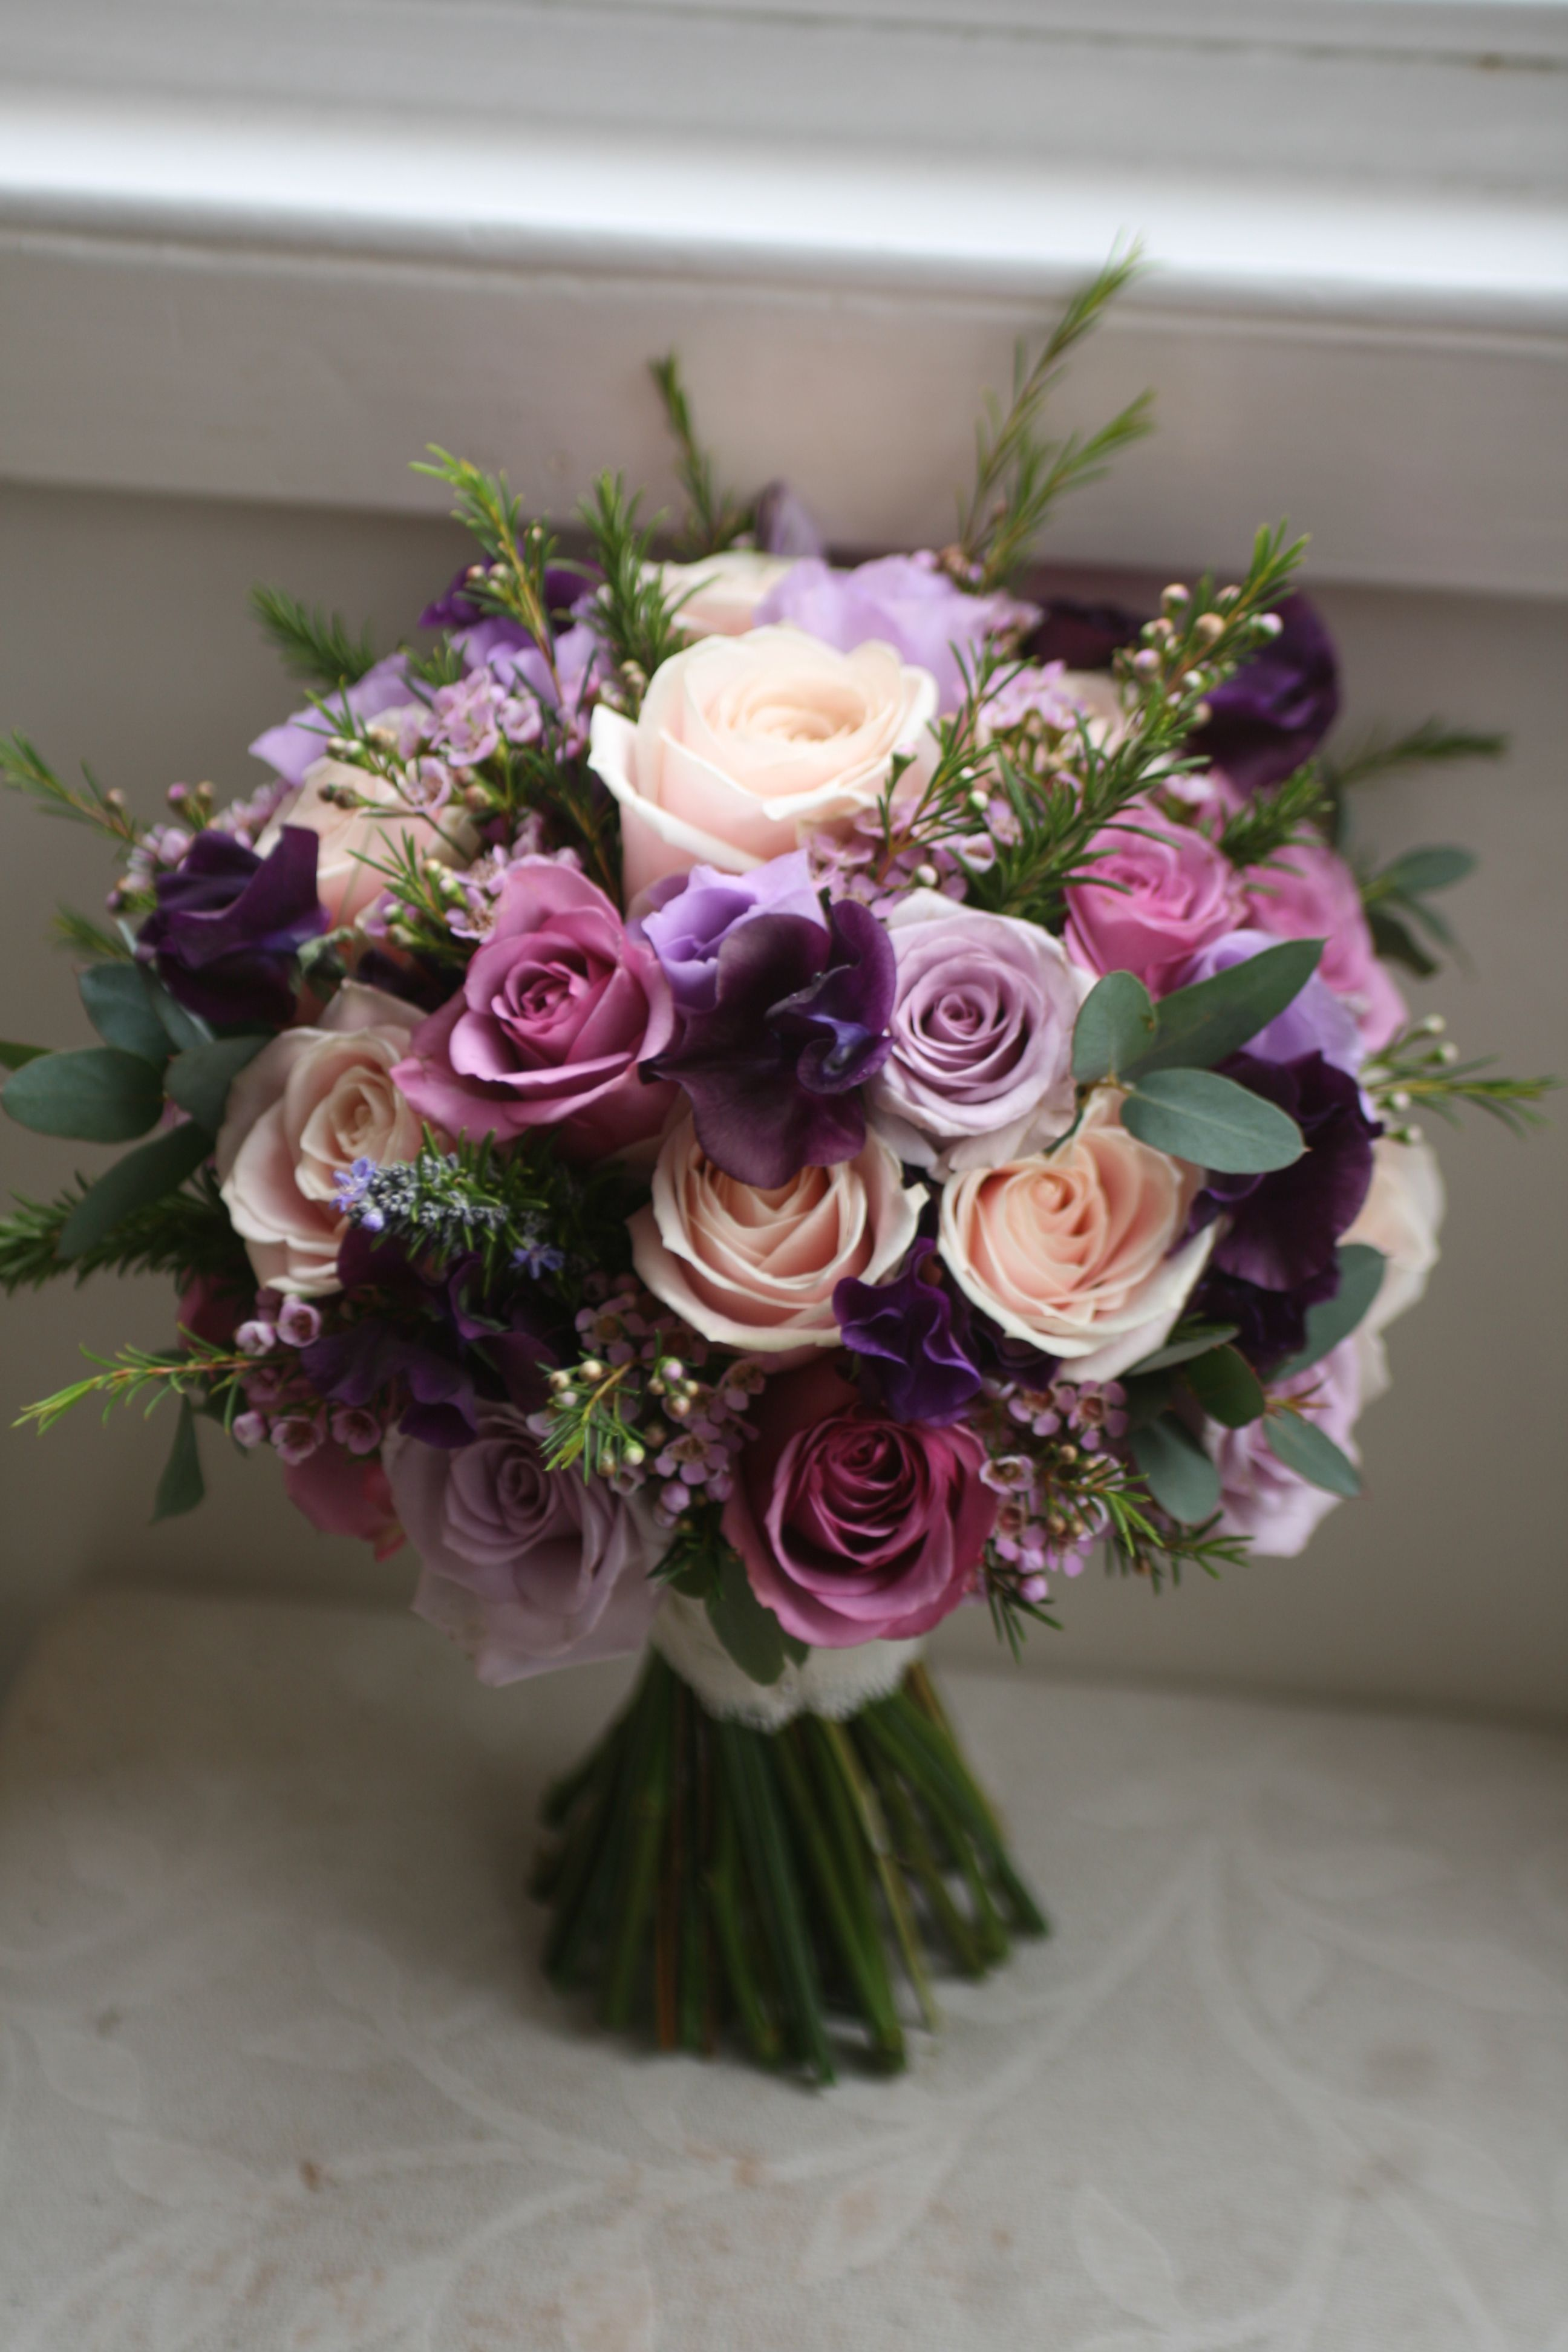 Wedding bouquet of sweet avalanche ocean song and cool water roses wedding bouquet of sweet avalanche ocean song and cool water roses waxflower eustoma and izmirmasajfo Gallery